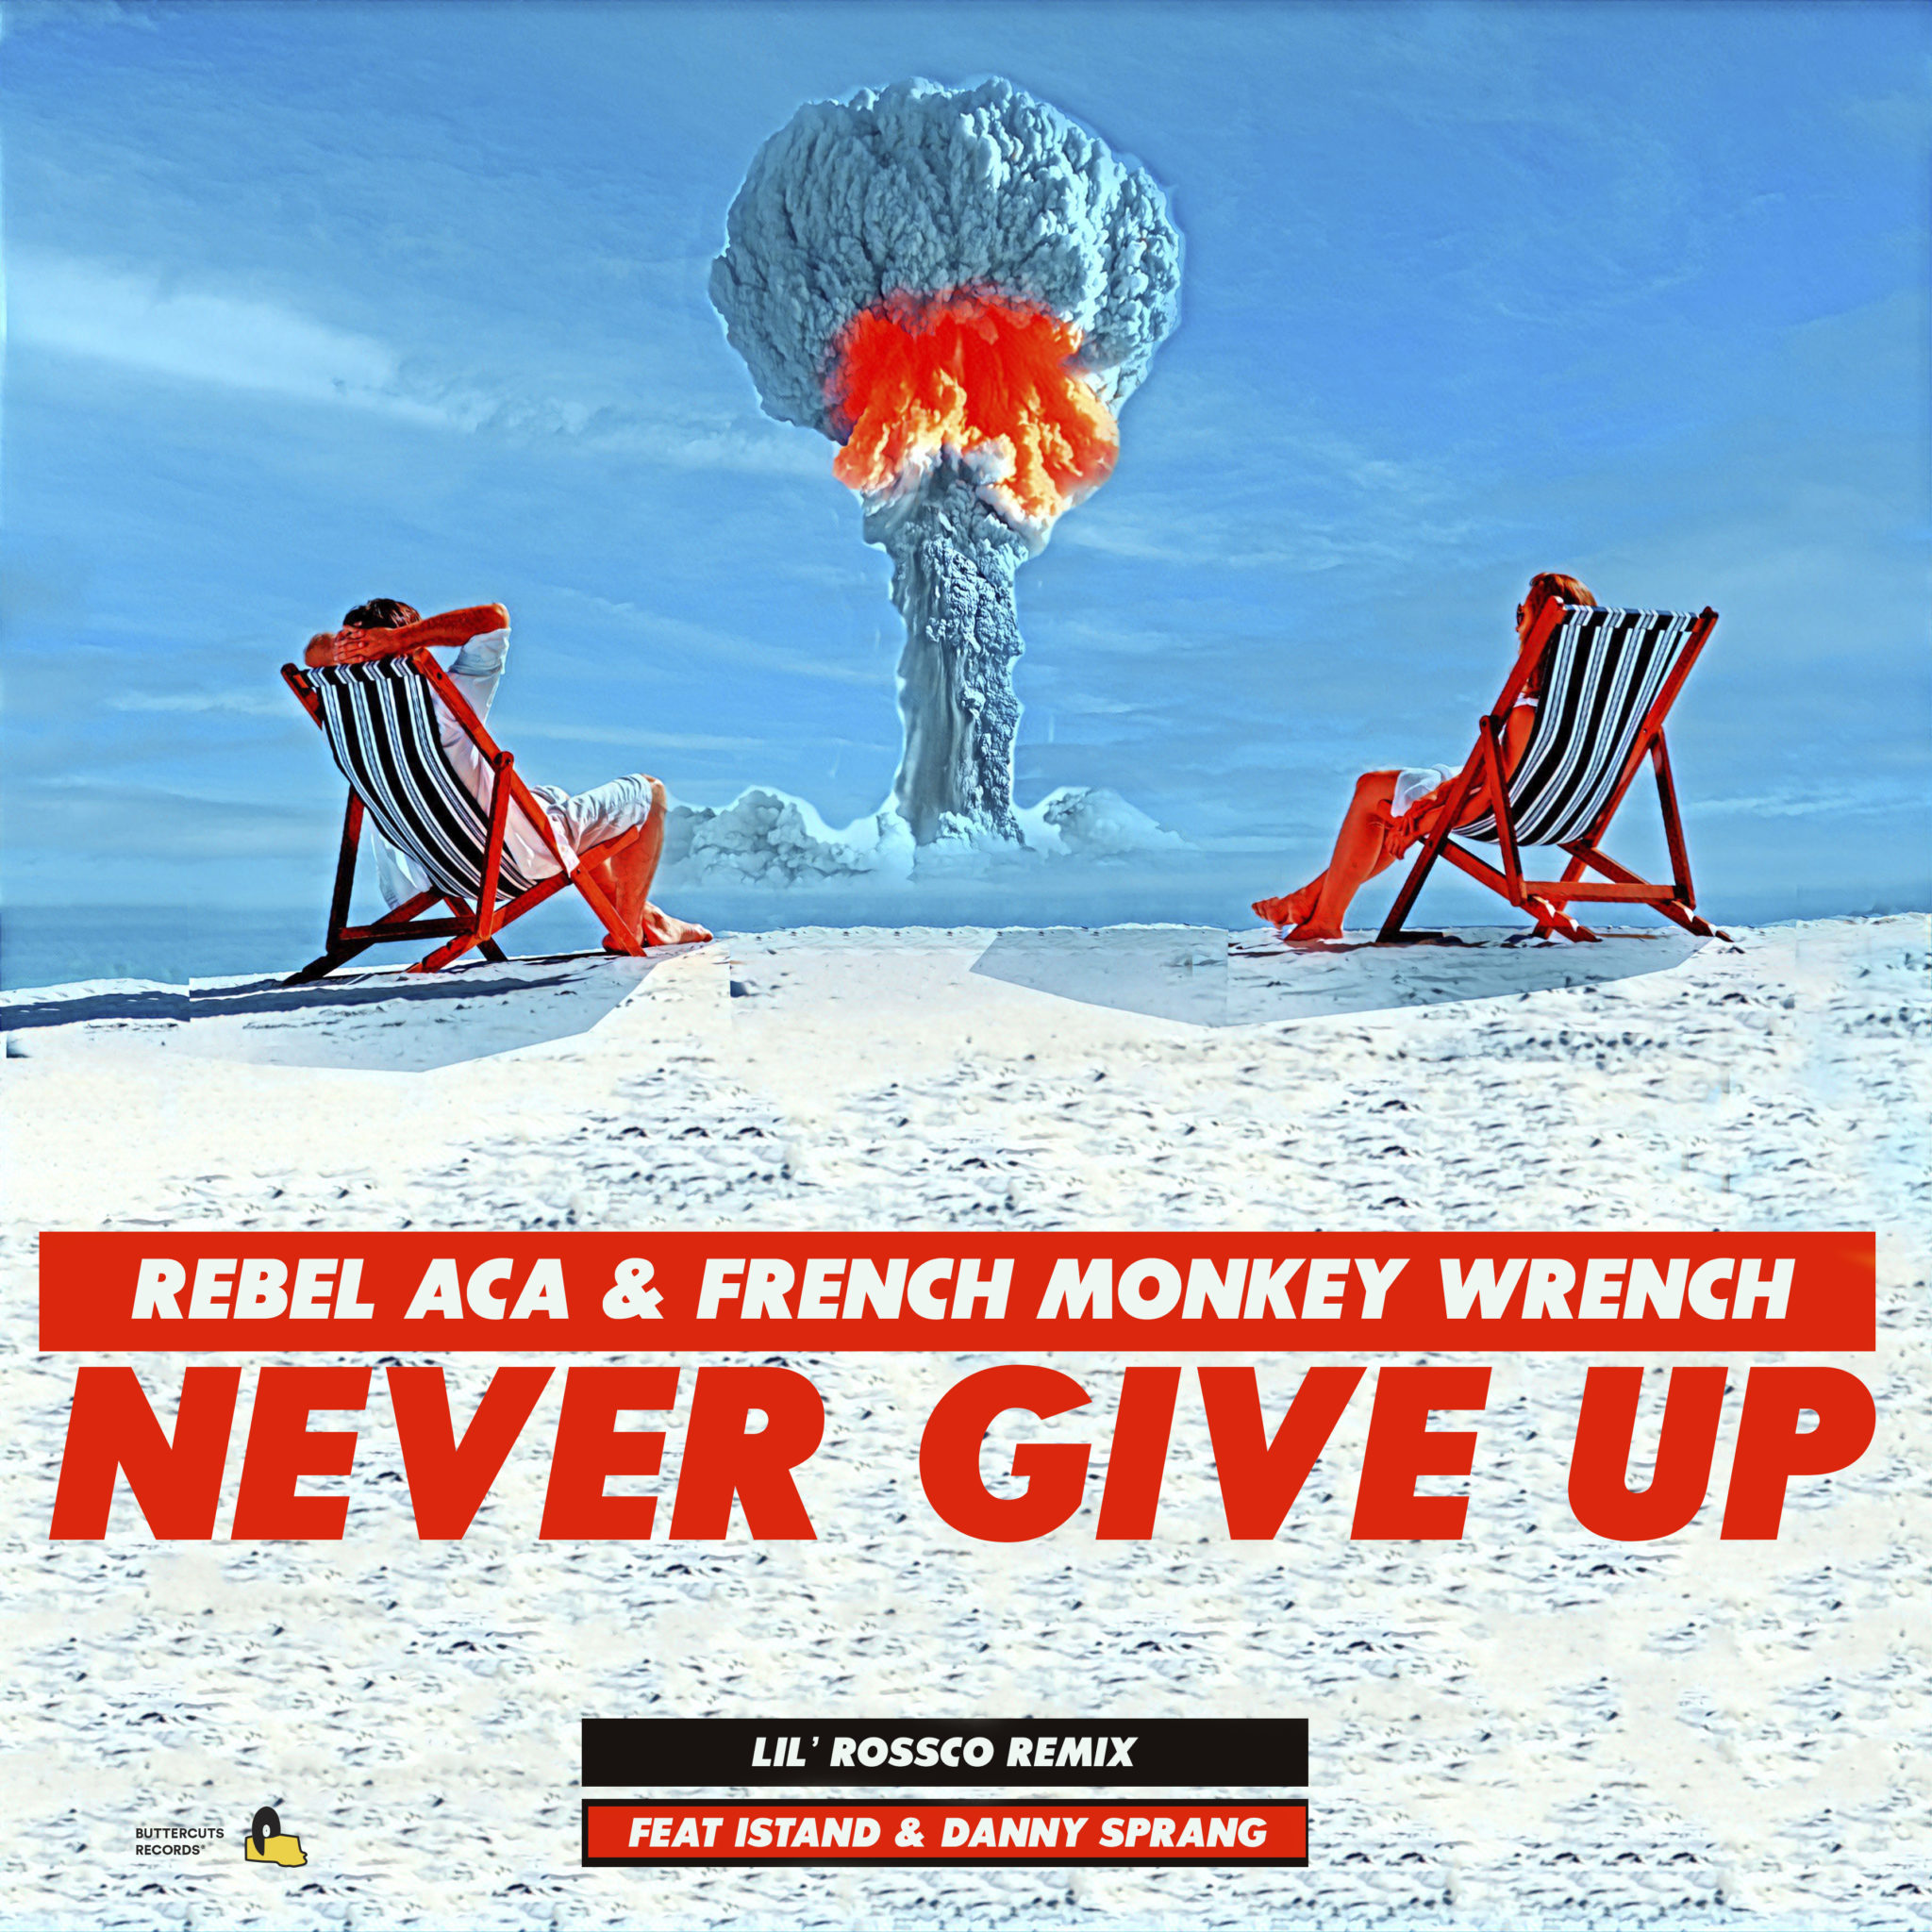 """Rebel ACA & French Monkey Wrench - """"Never Give Up"""" Reaction   Opinions   LIVING LIFE FEARLESS"""